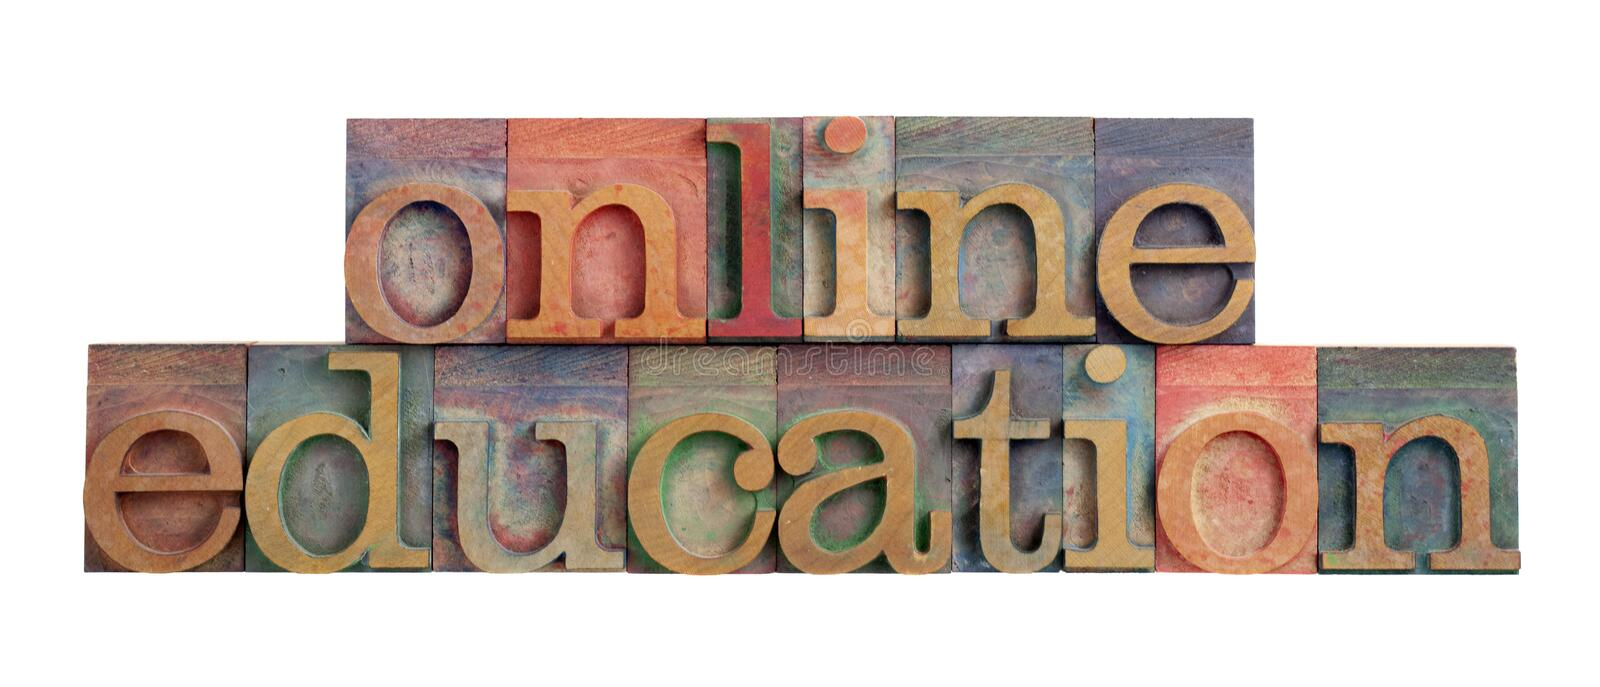 Online education stock photography